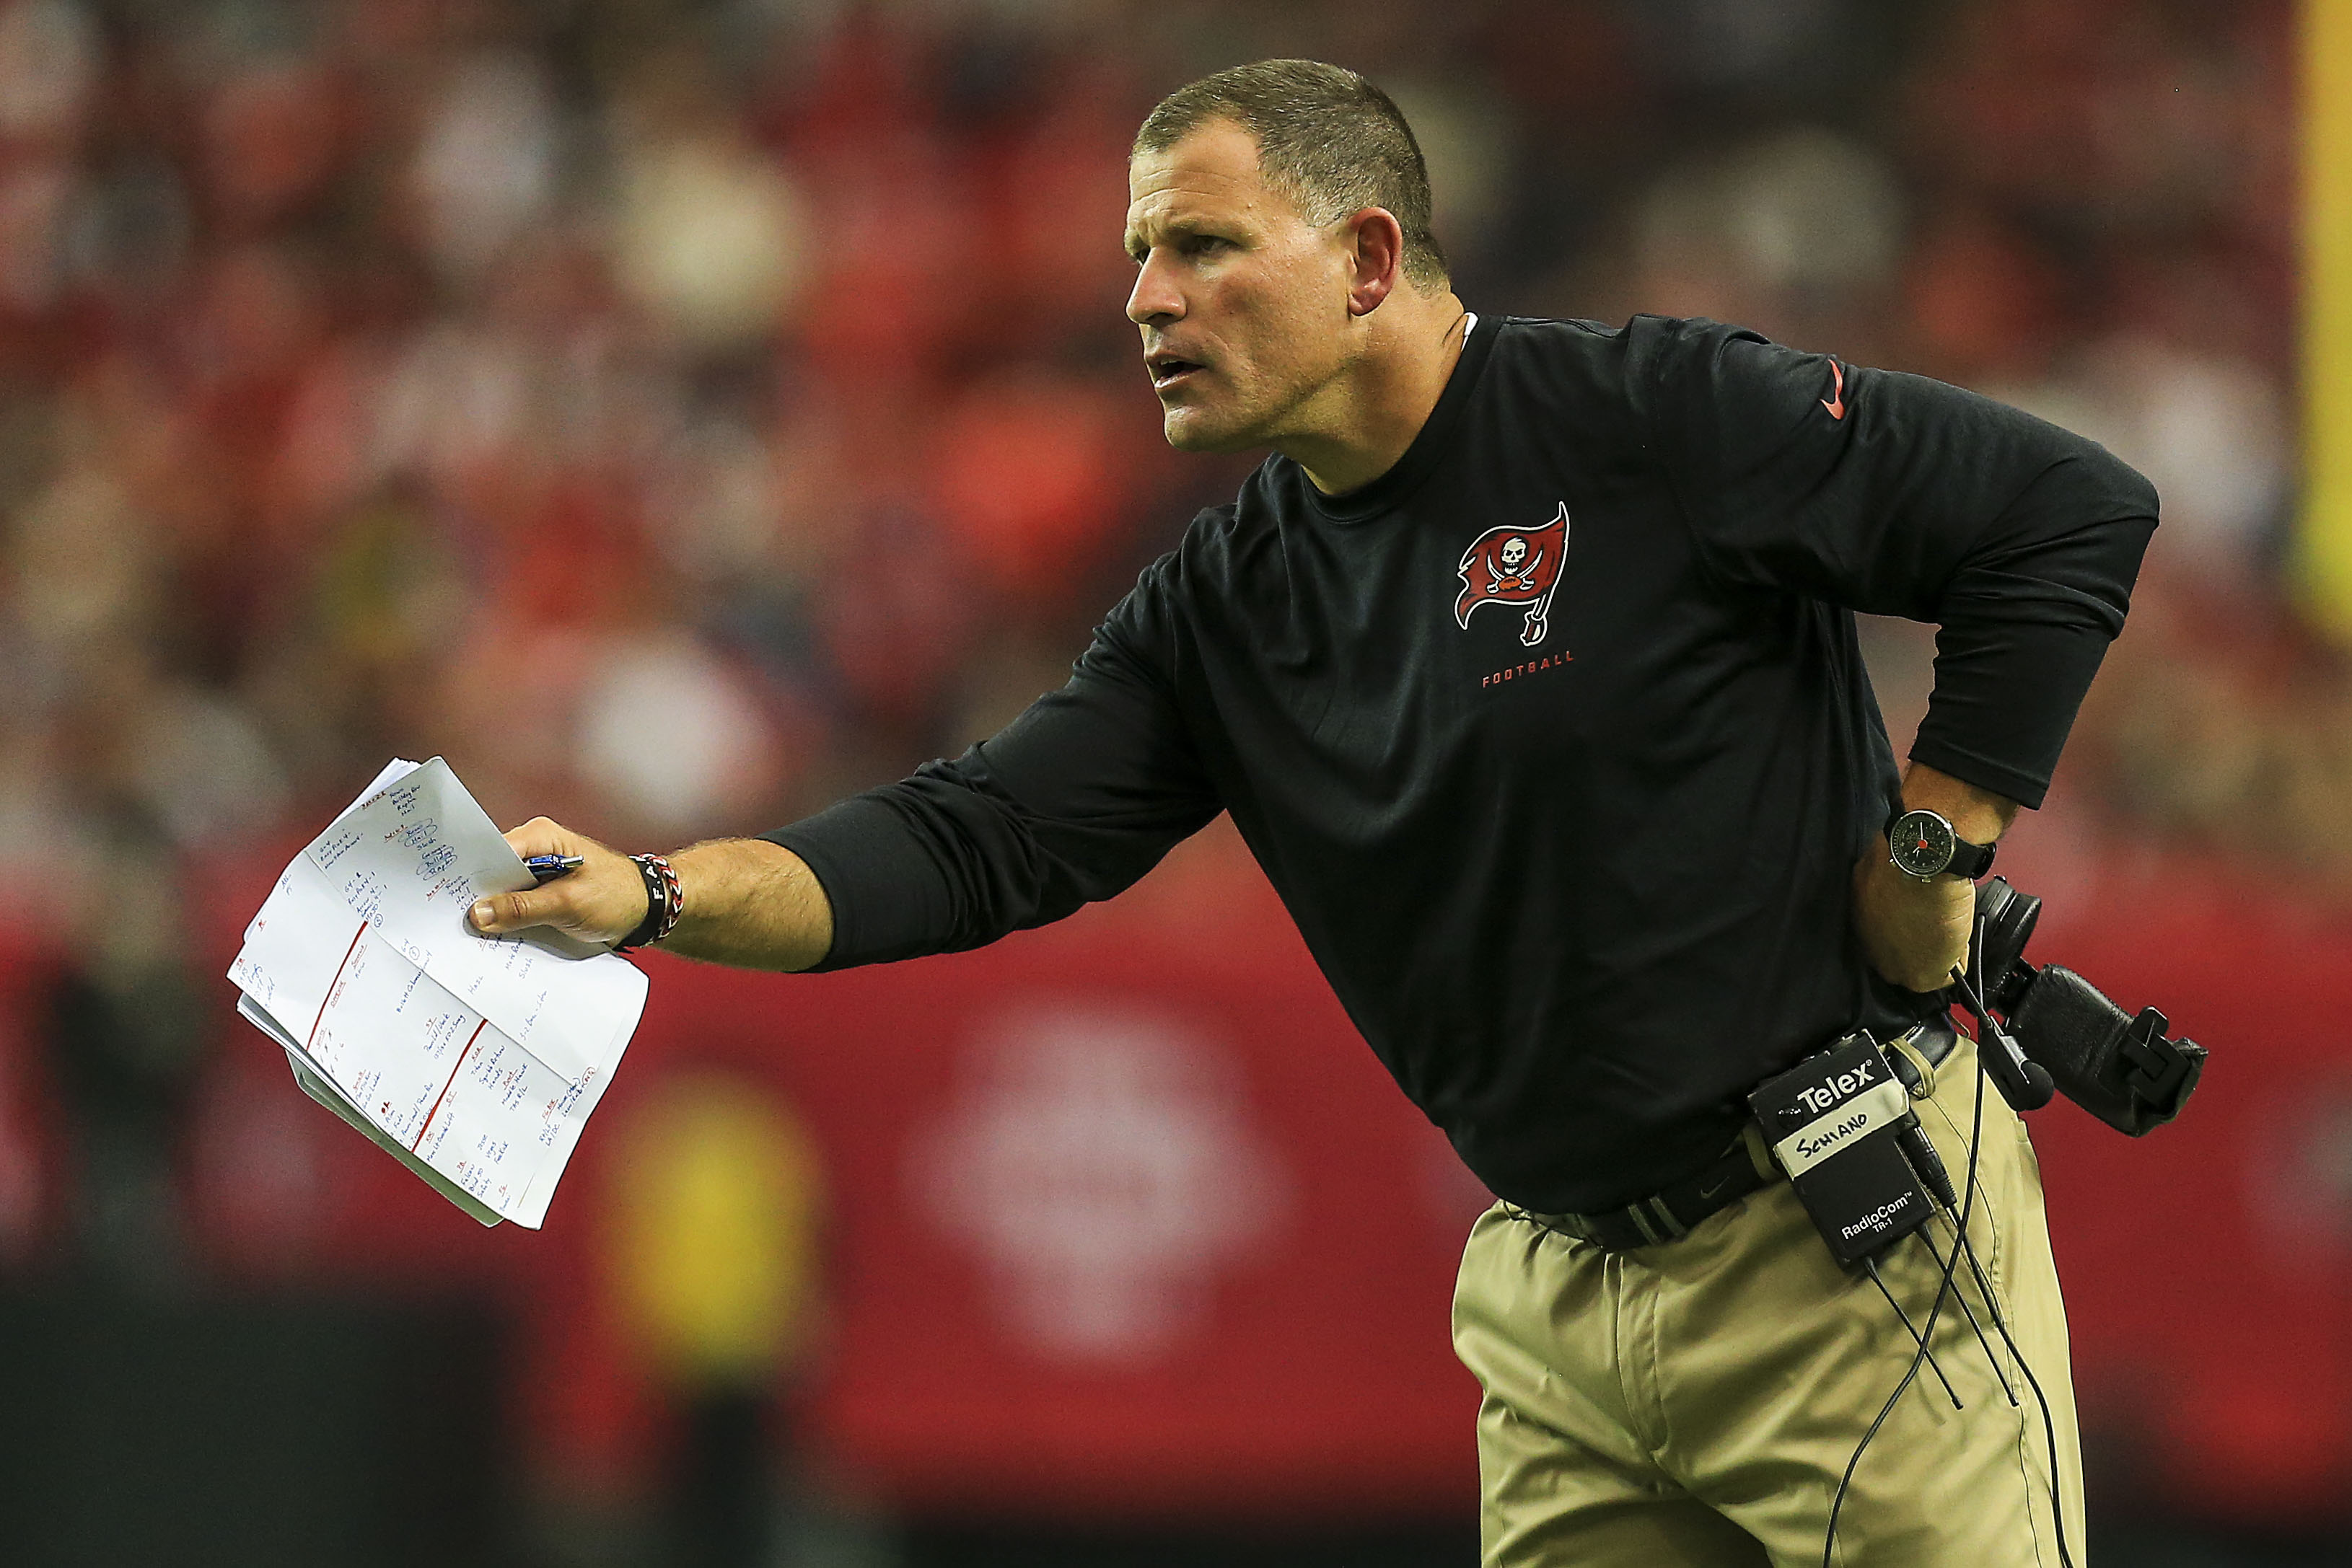 Will Greg Schiano Lose His Job Before The End Of The